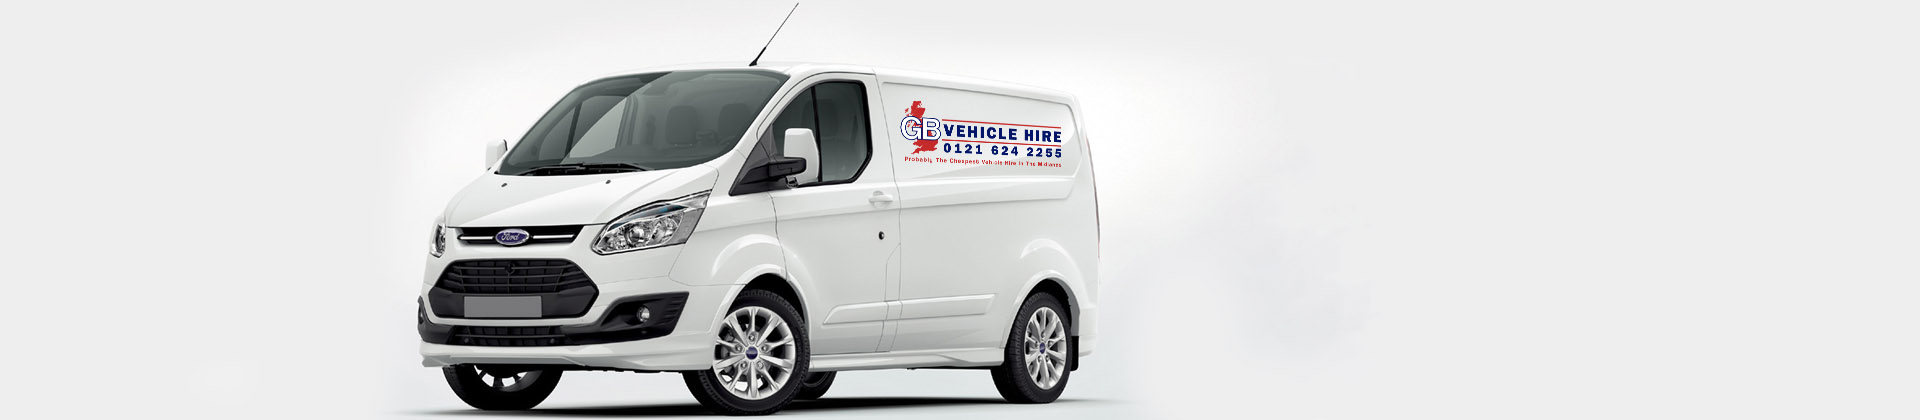 van-hire-for-home-removal